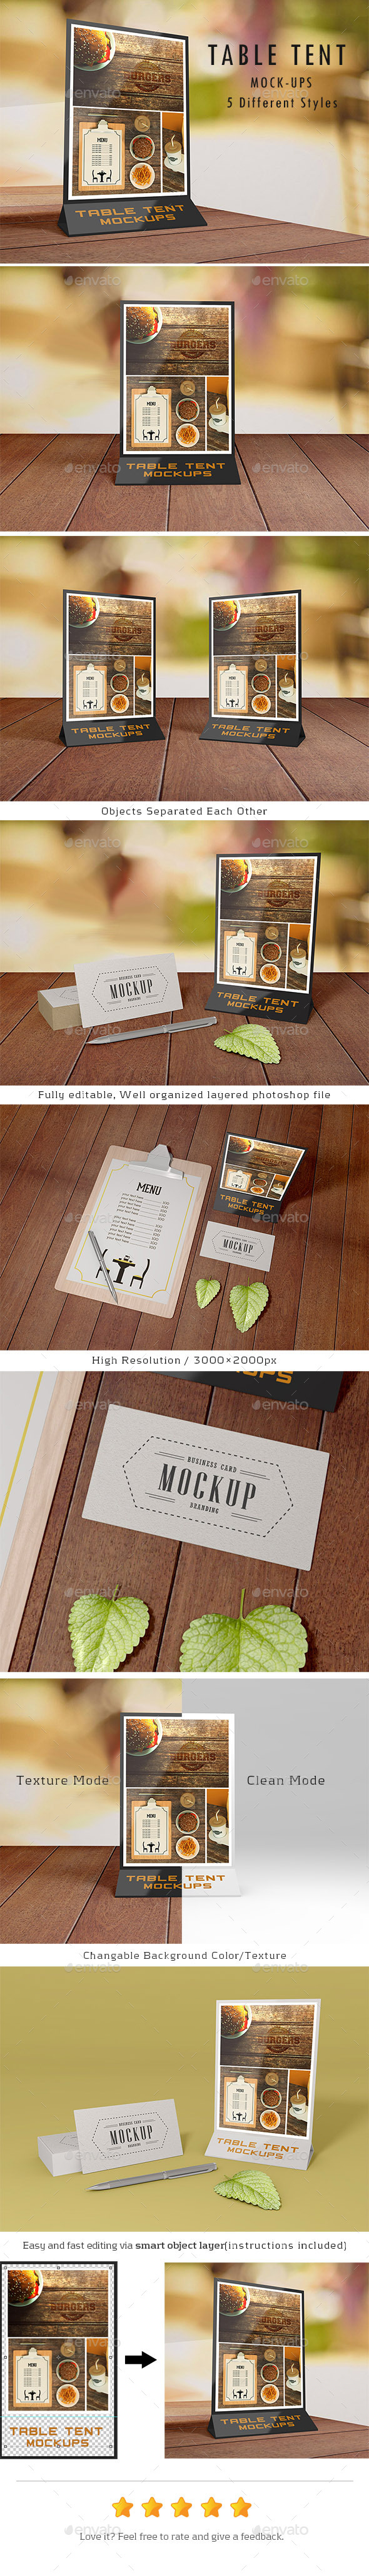 Table Tent Mock-Ups